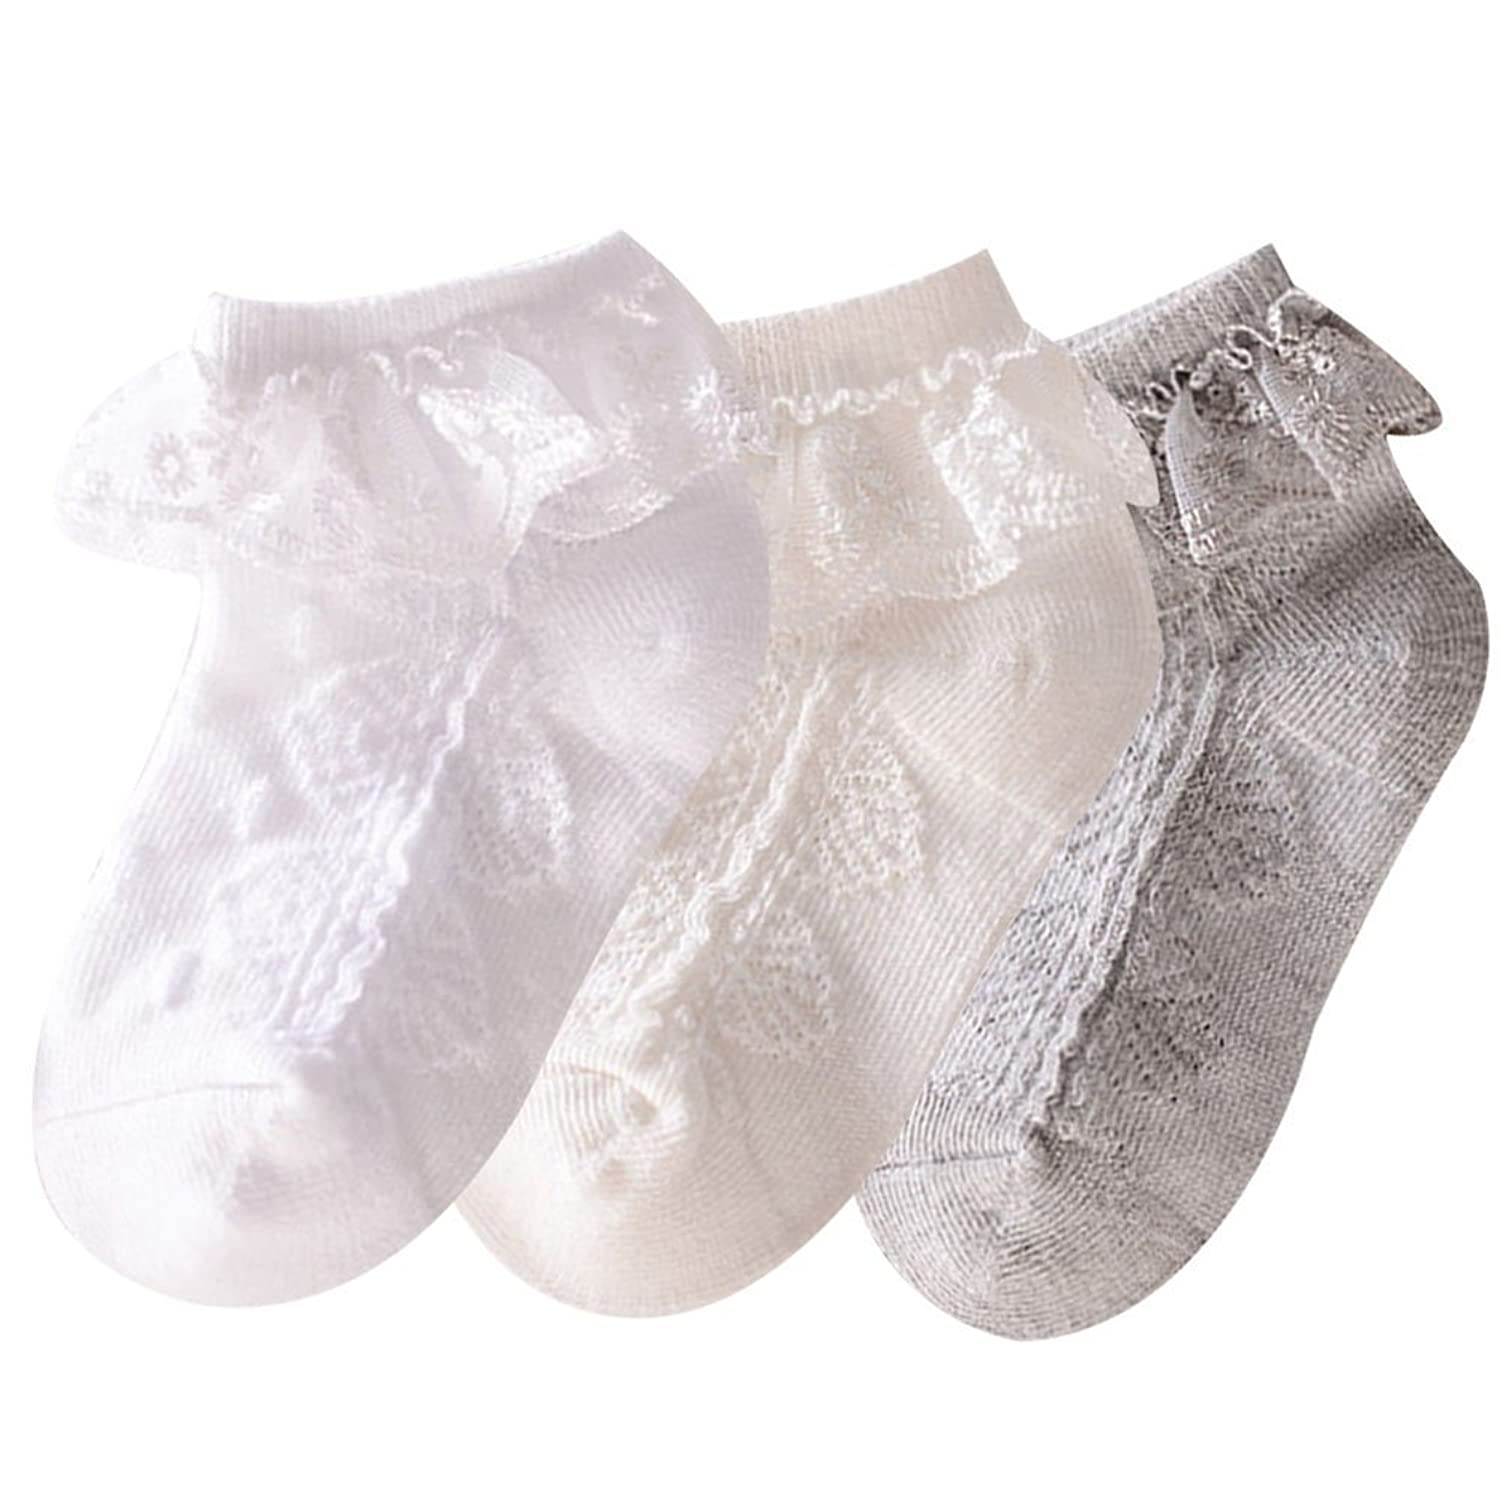 Taiycyxgan Baby Girls Eyelet Frilly Lace Socks 3 Pack Infant Toddler